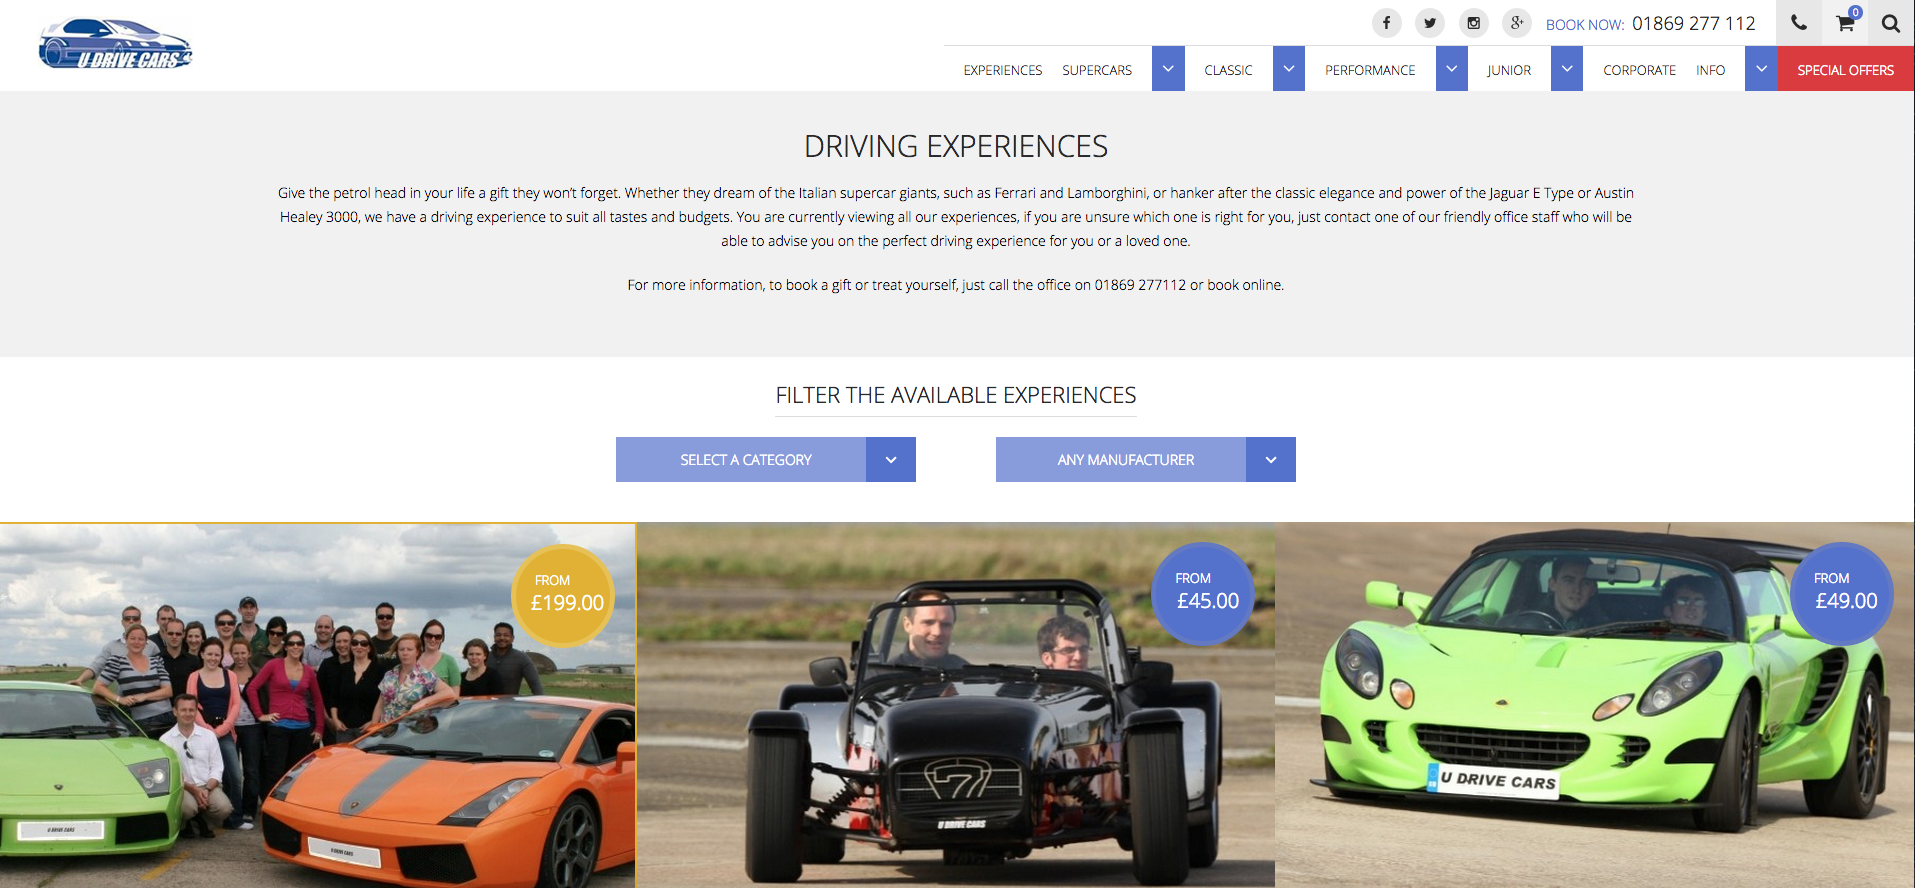 New U Drive Cars Category Page Design